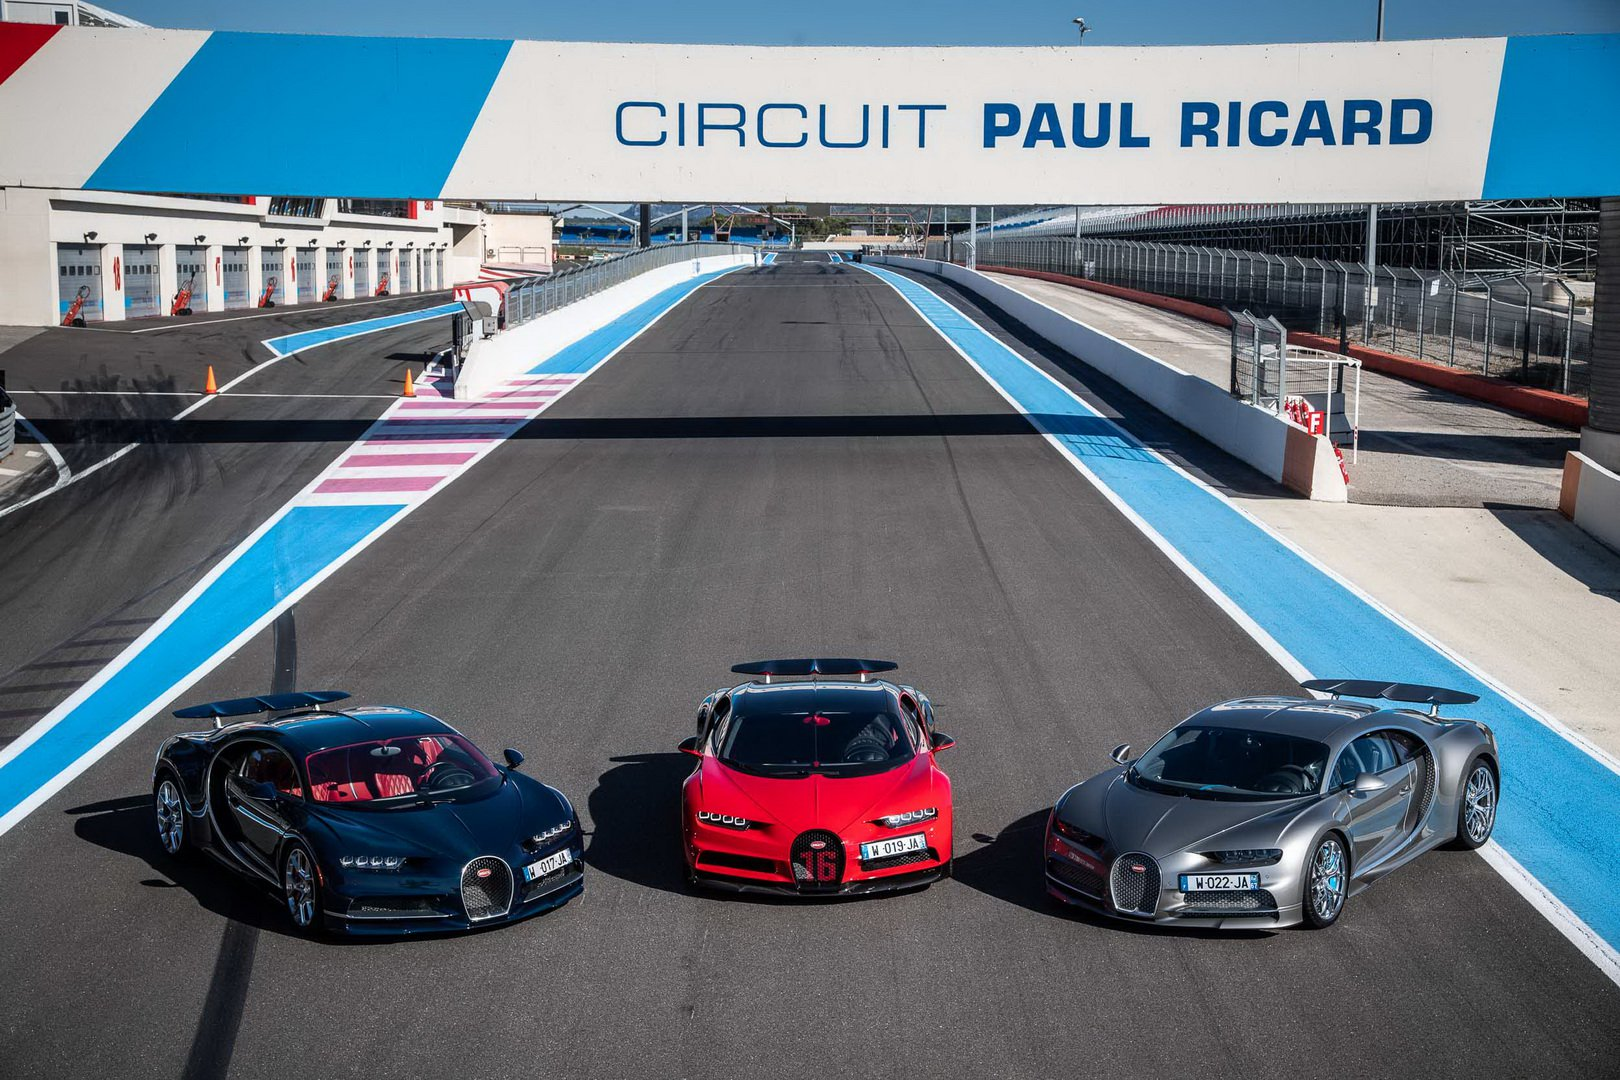 Bugatti-Chiron-and-Chiron-Sport-at-Paul-Ricard-Circuit-1